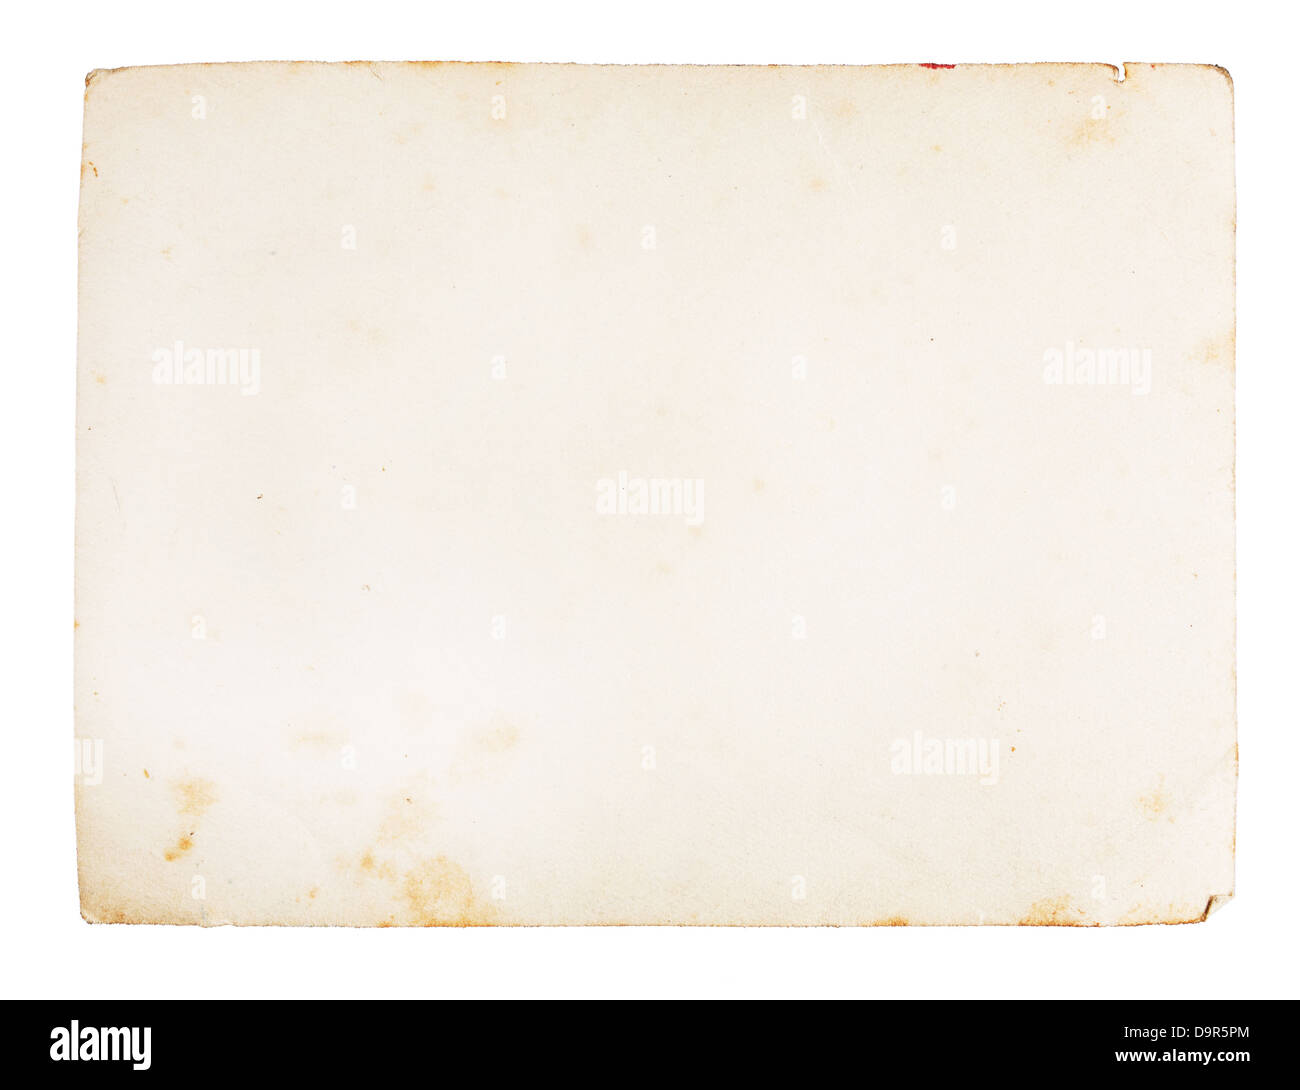 Old paper texture, isolated on white - Stock Image